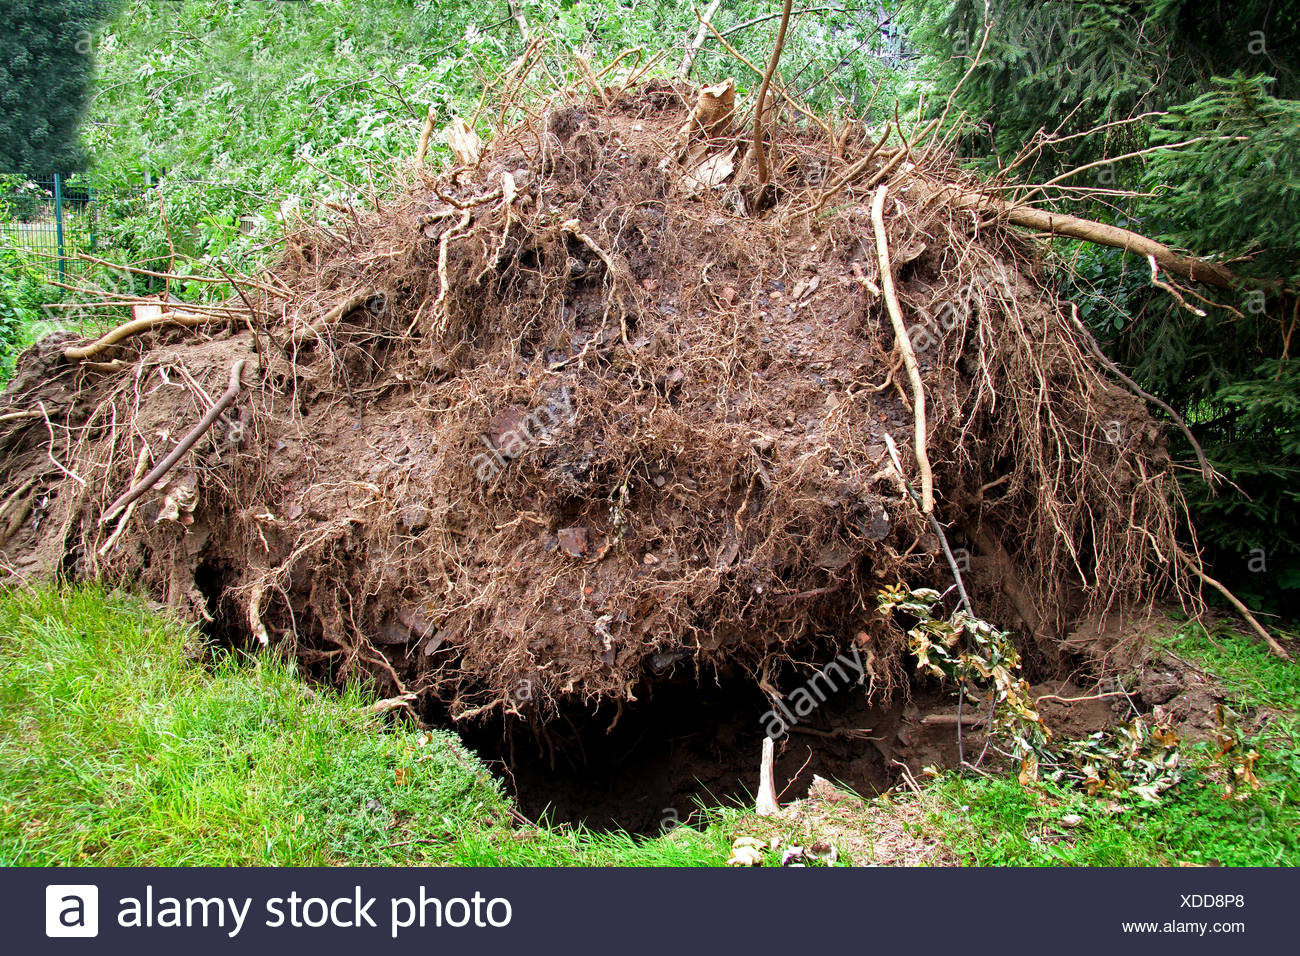 tree roots of disrooted ash, storm front Ela at 2014-06-09, Germany, North Rhine-Westphalia, Ruhr Area, Essen - Stock Image